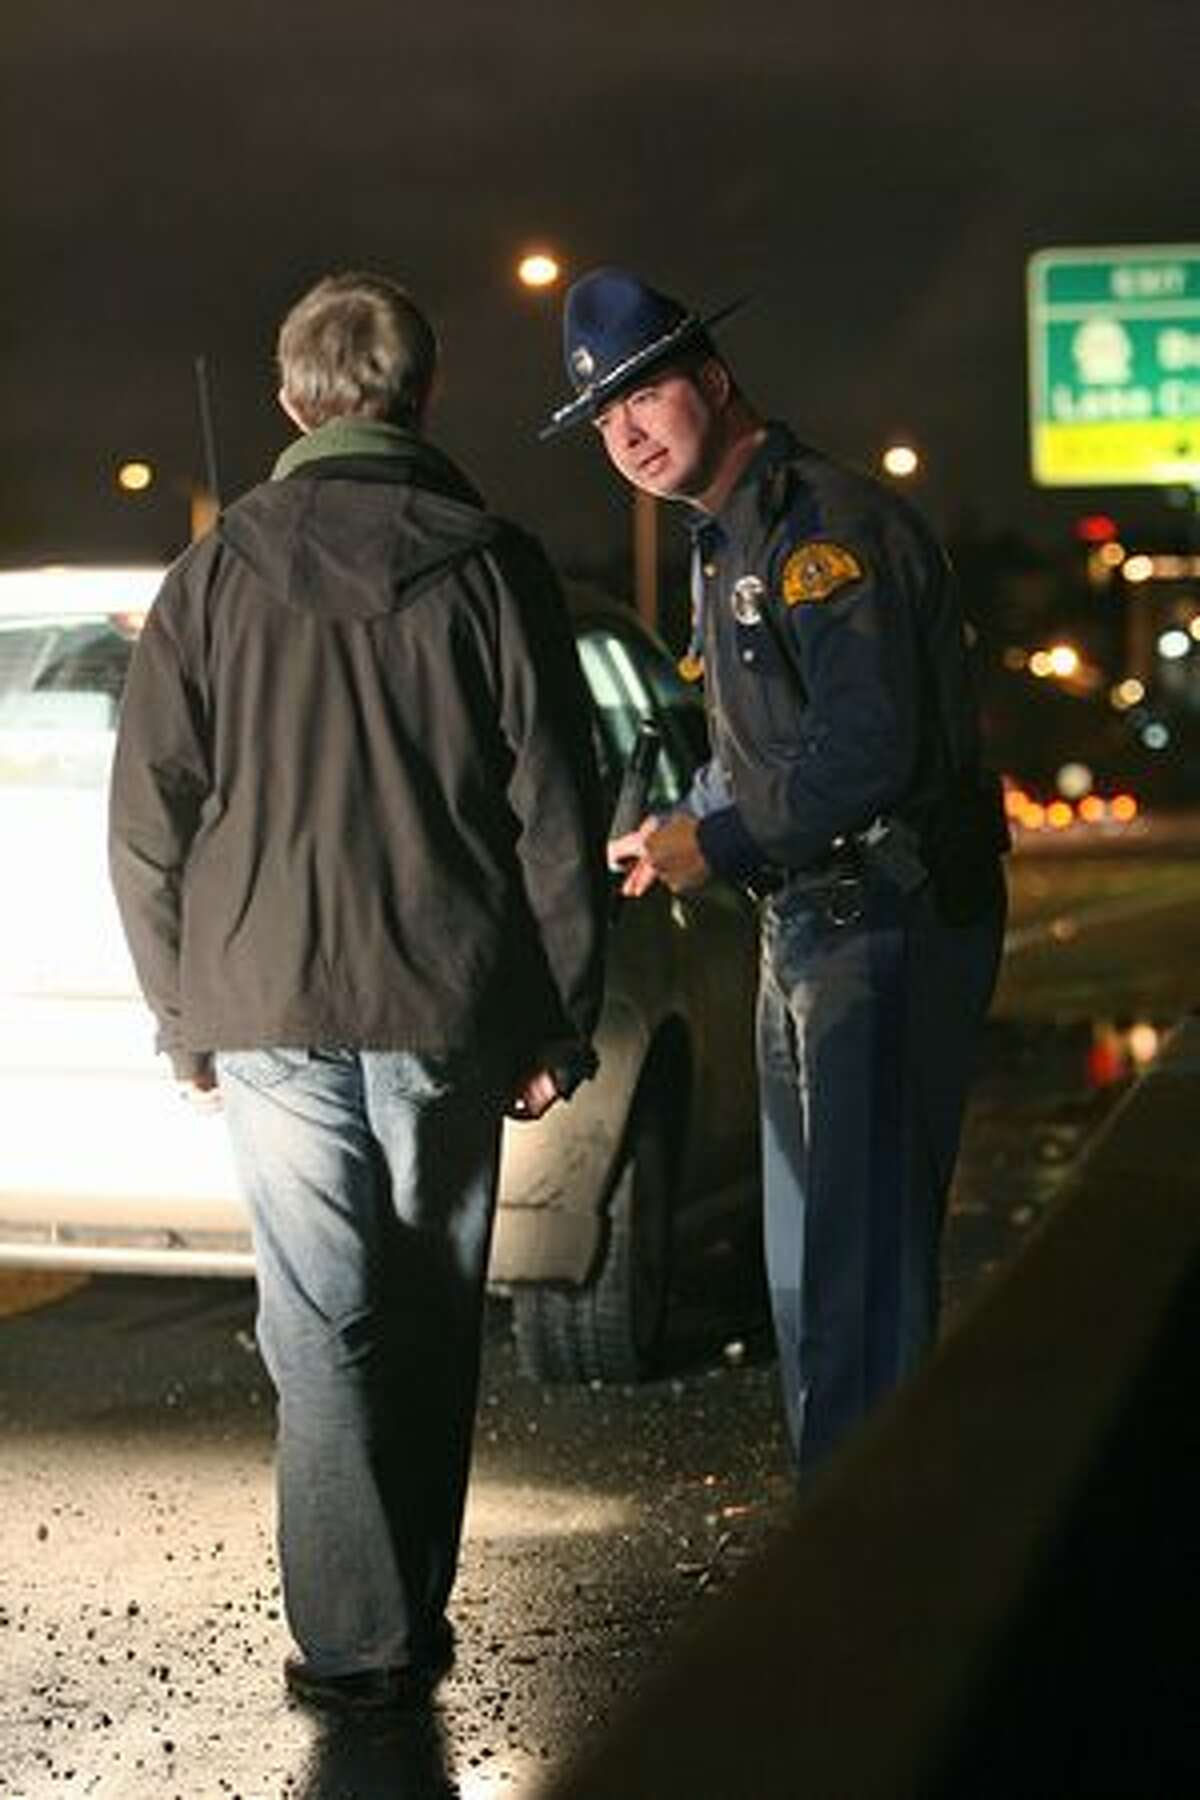 Washington State Patrol Trooper Joe Gannon administers a field sobriety test to a suspected drunken driver he pulled over on Interstate 5 in Dec., 2007.